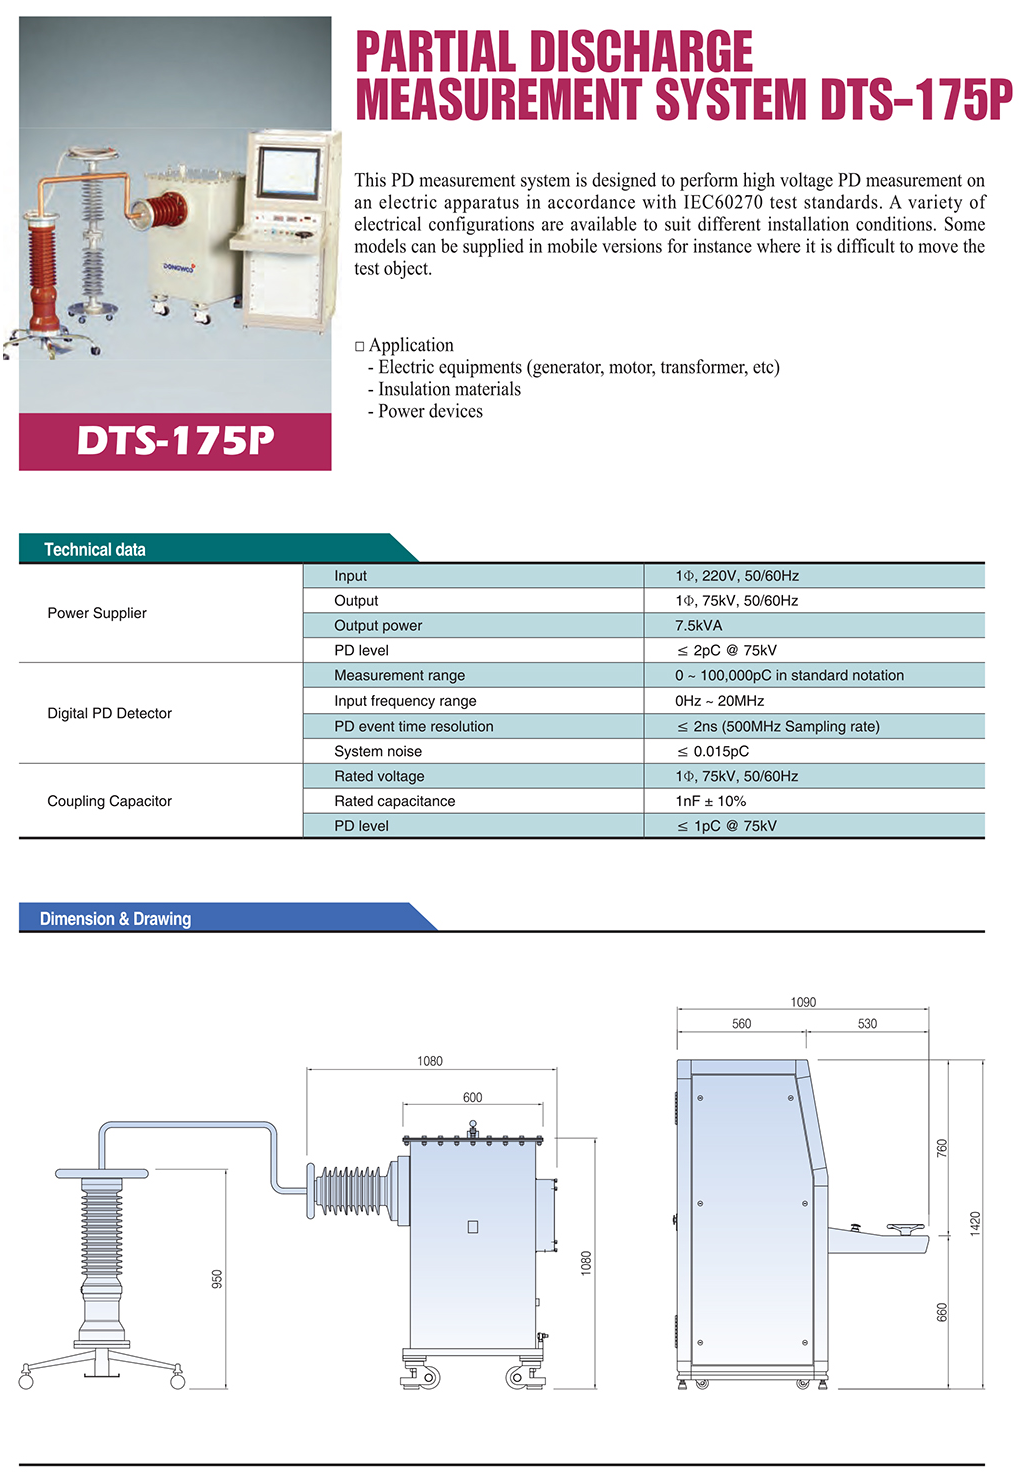 DONGWOO Partial Discharge Measurement System DTS-175P